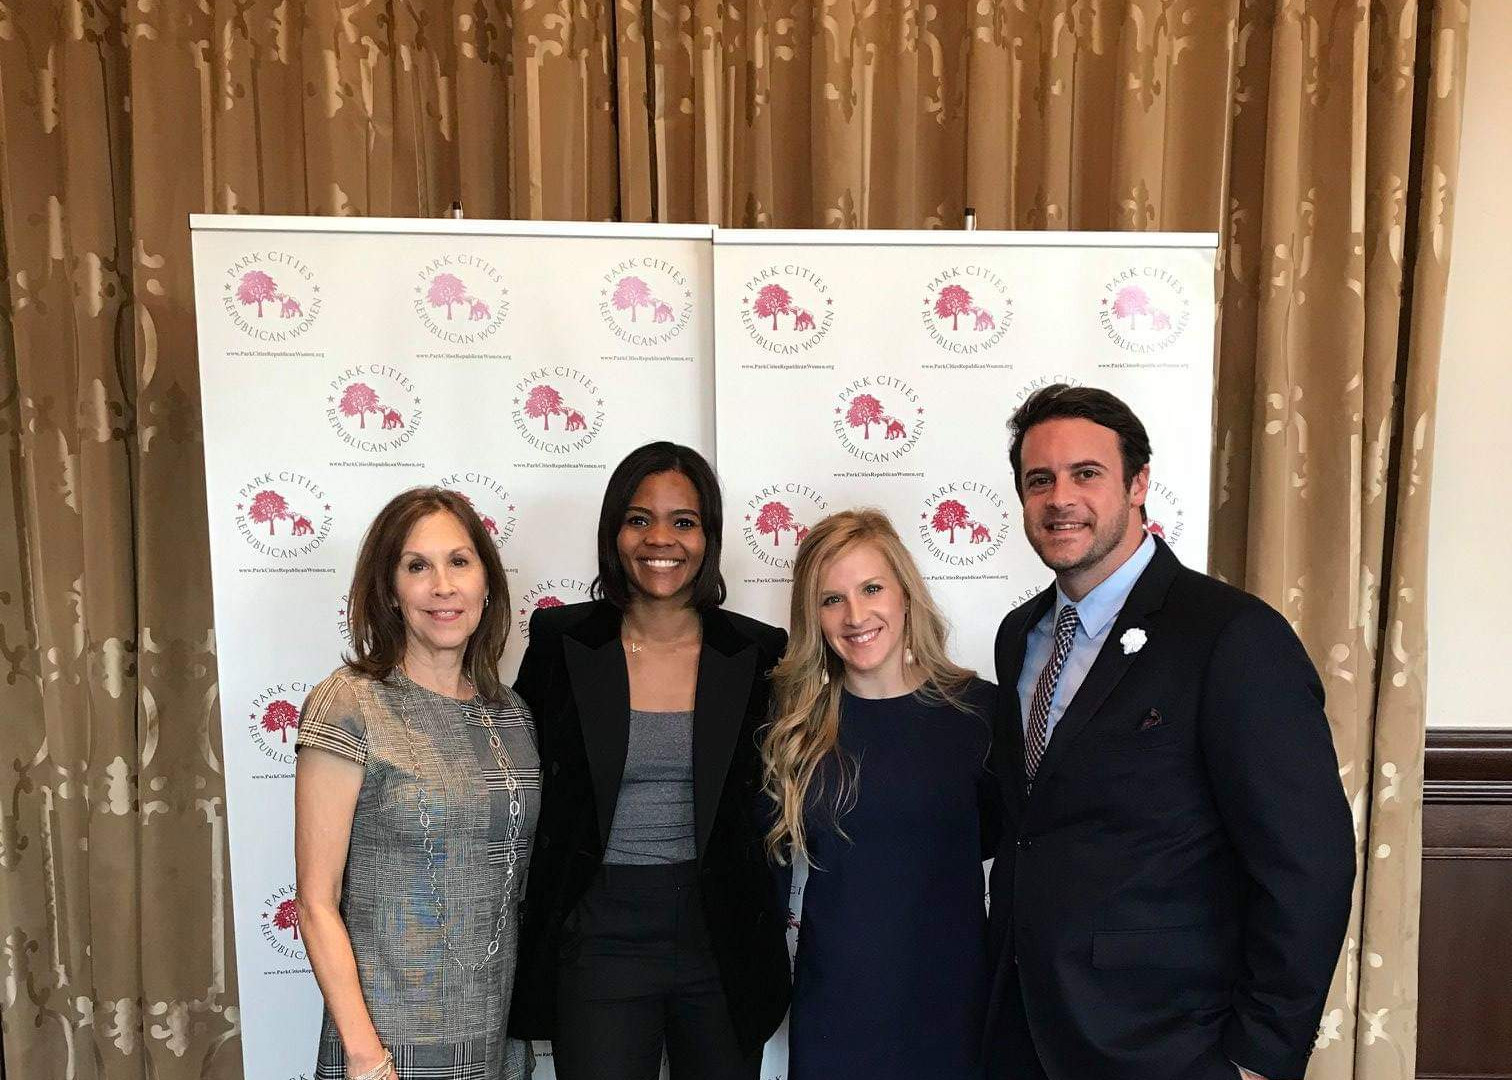 Ruth Secker Chambers with Candace Owens.